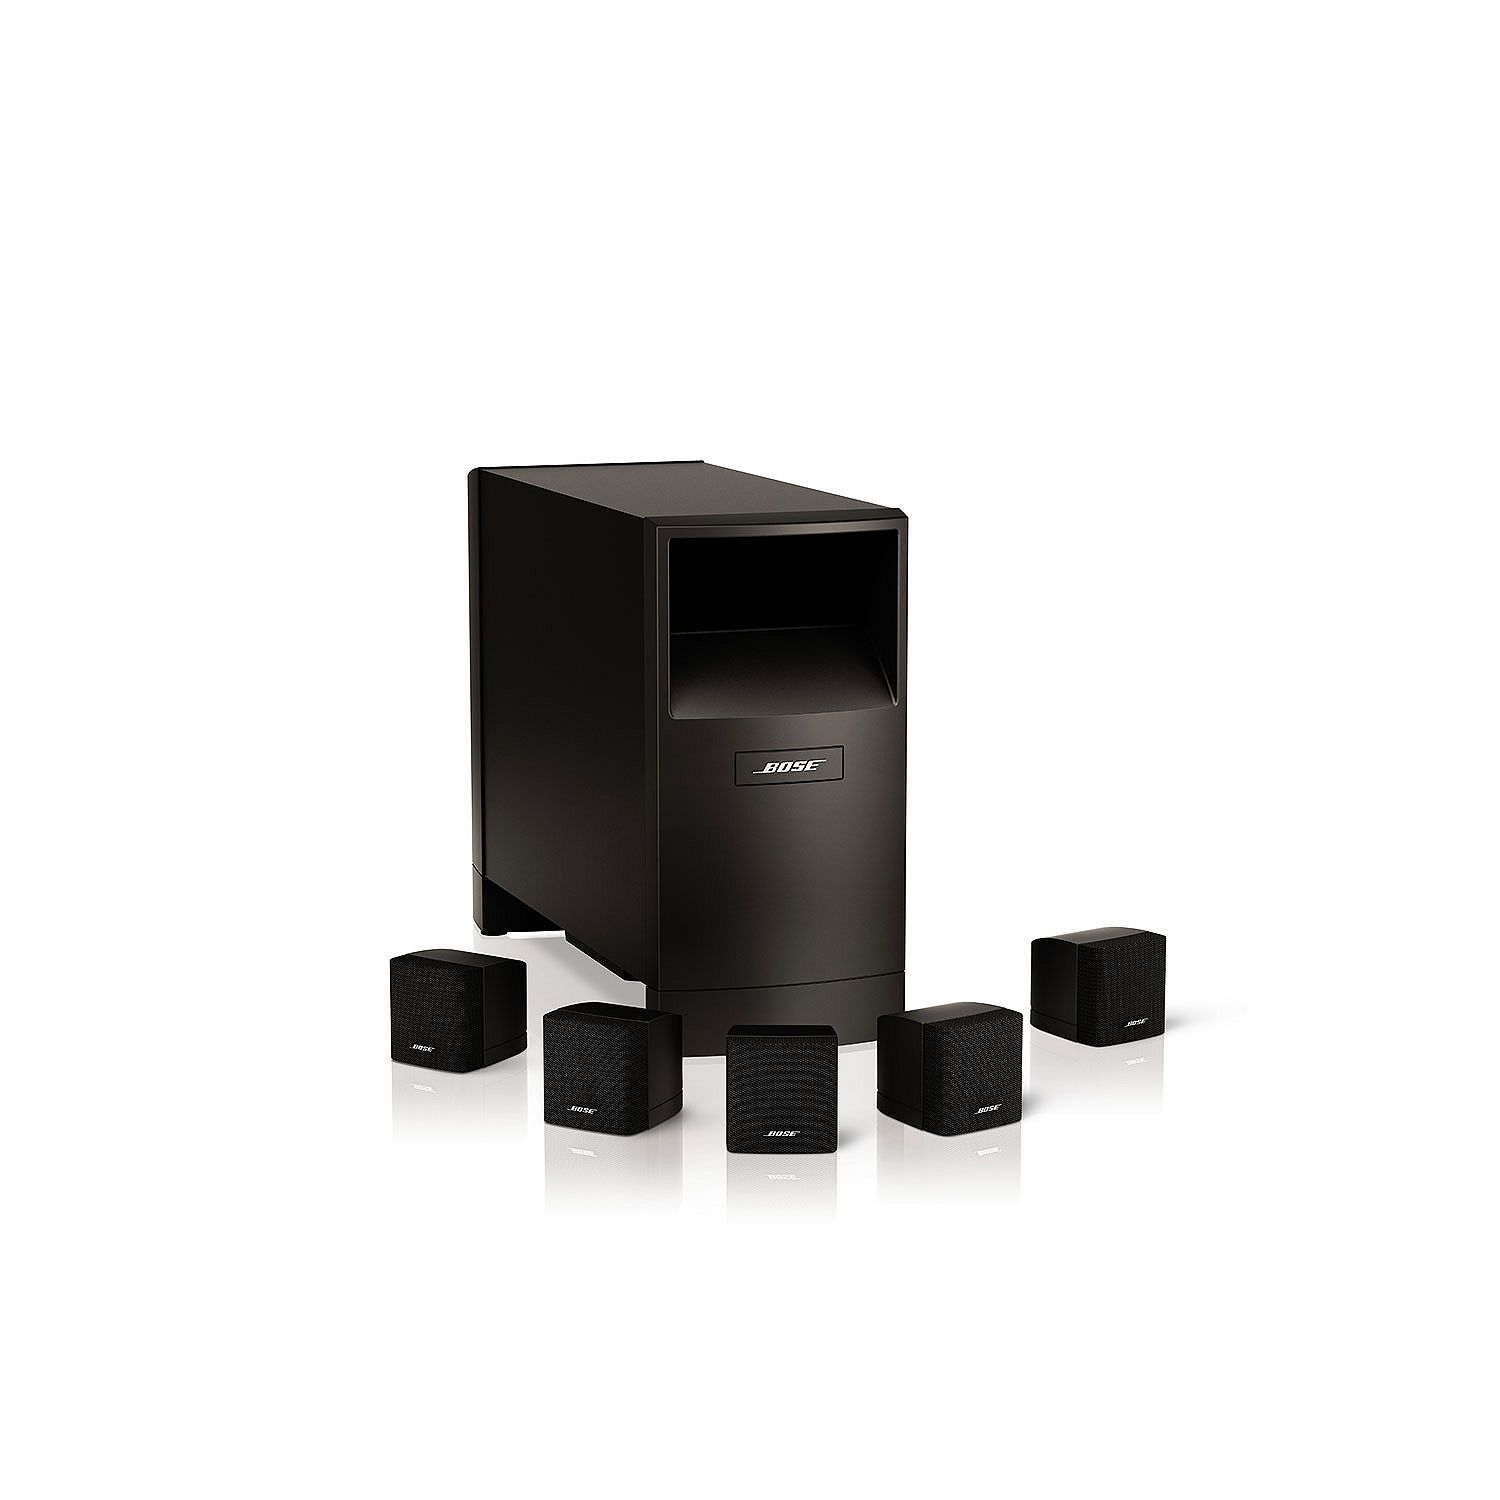 Bose Acoustimass 6 Series III Home Entertainment Speaker System� by Bose